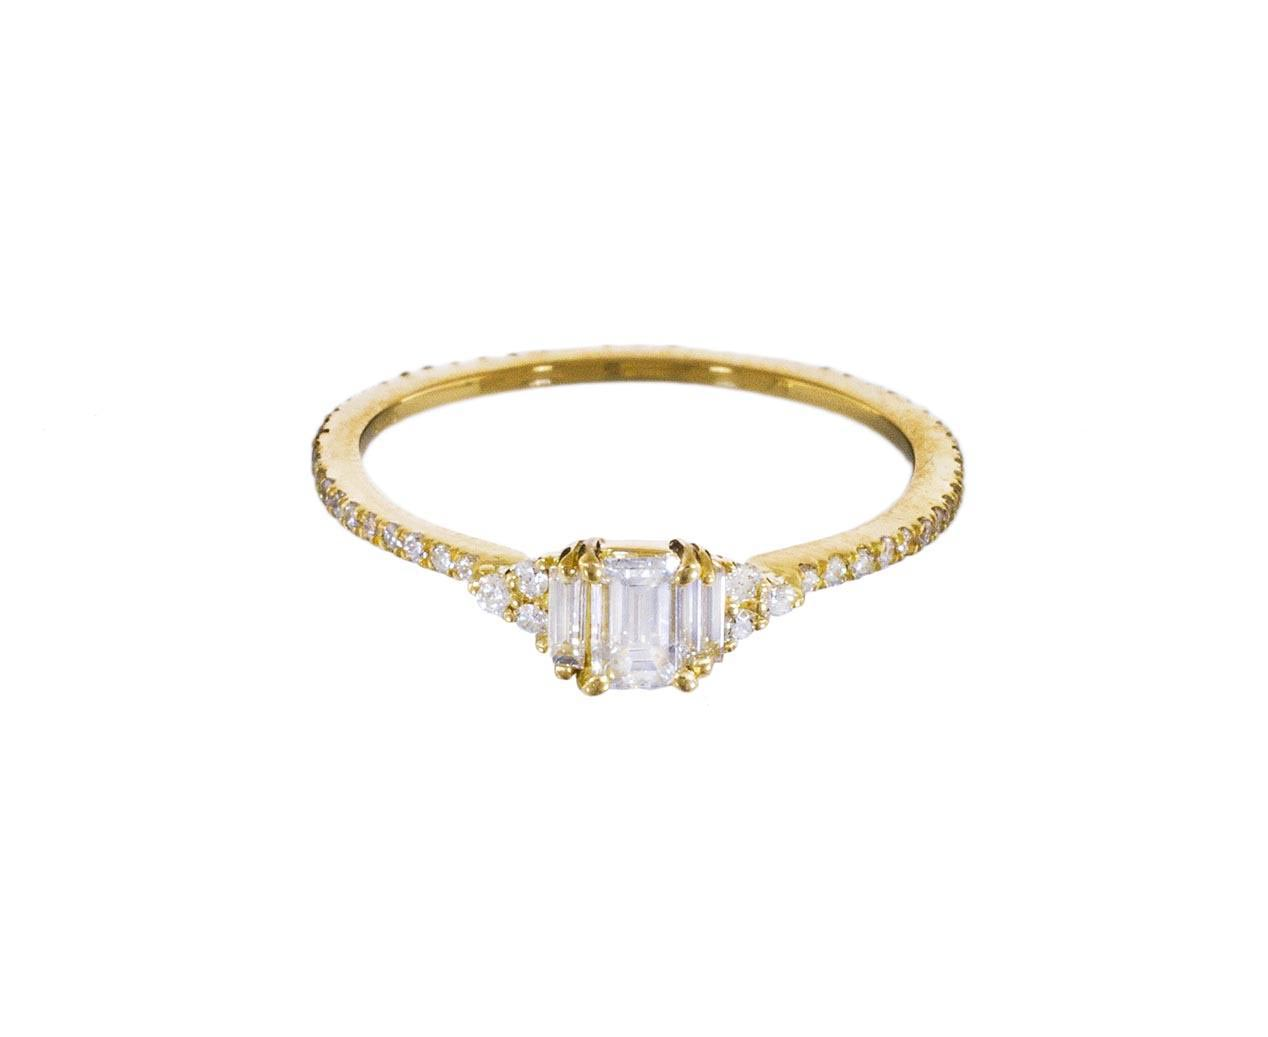 emerald cut ring with gold and diamond band